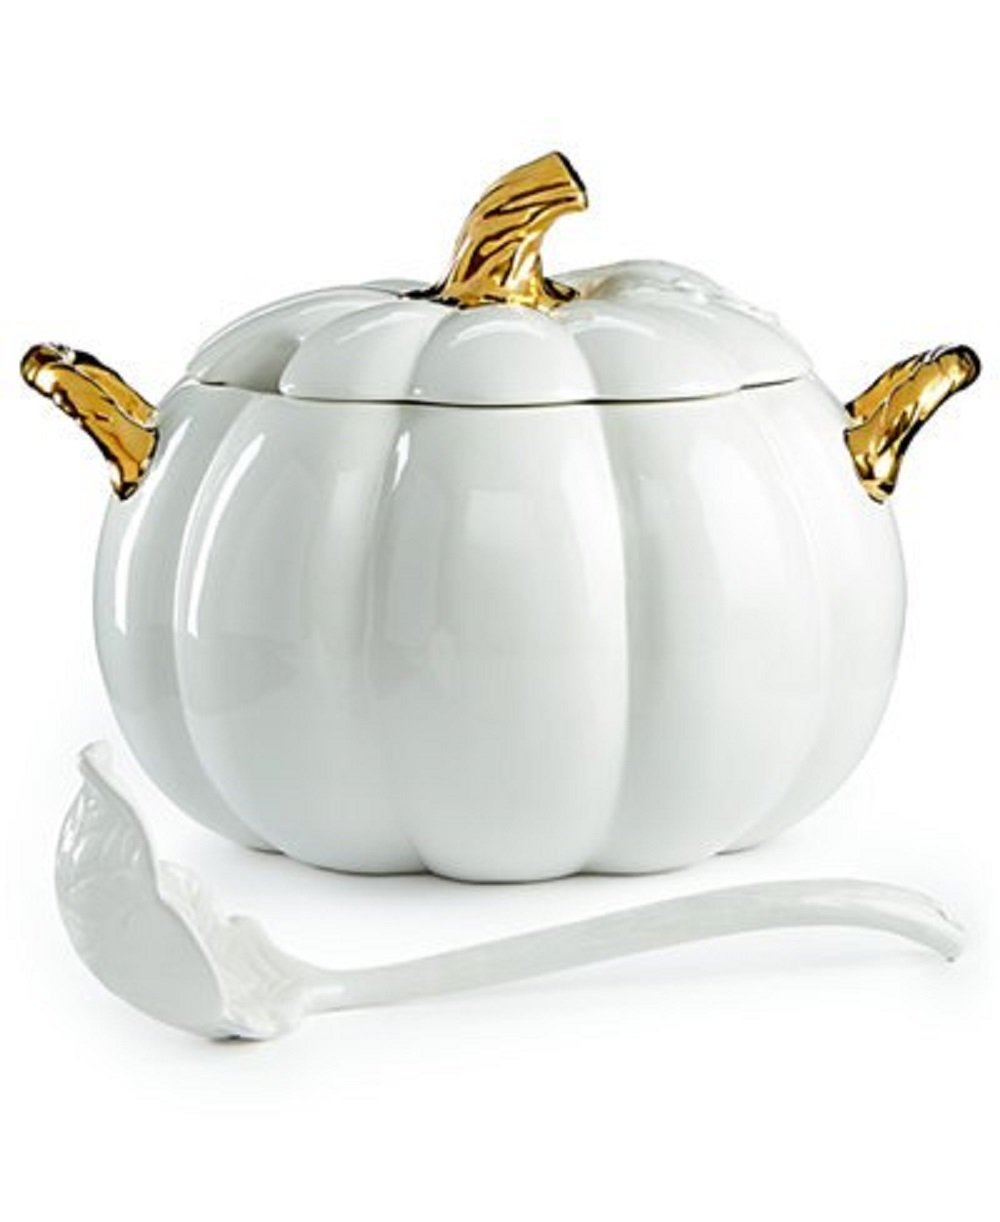 Martha Stewart Collection's Elegant Glossy White and Gold-tone Harvest Pumpkin Soup Tureen With Ladle